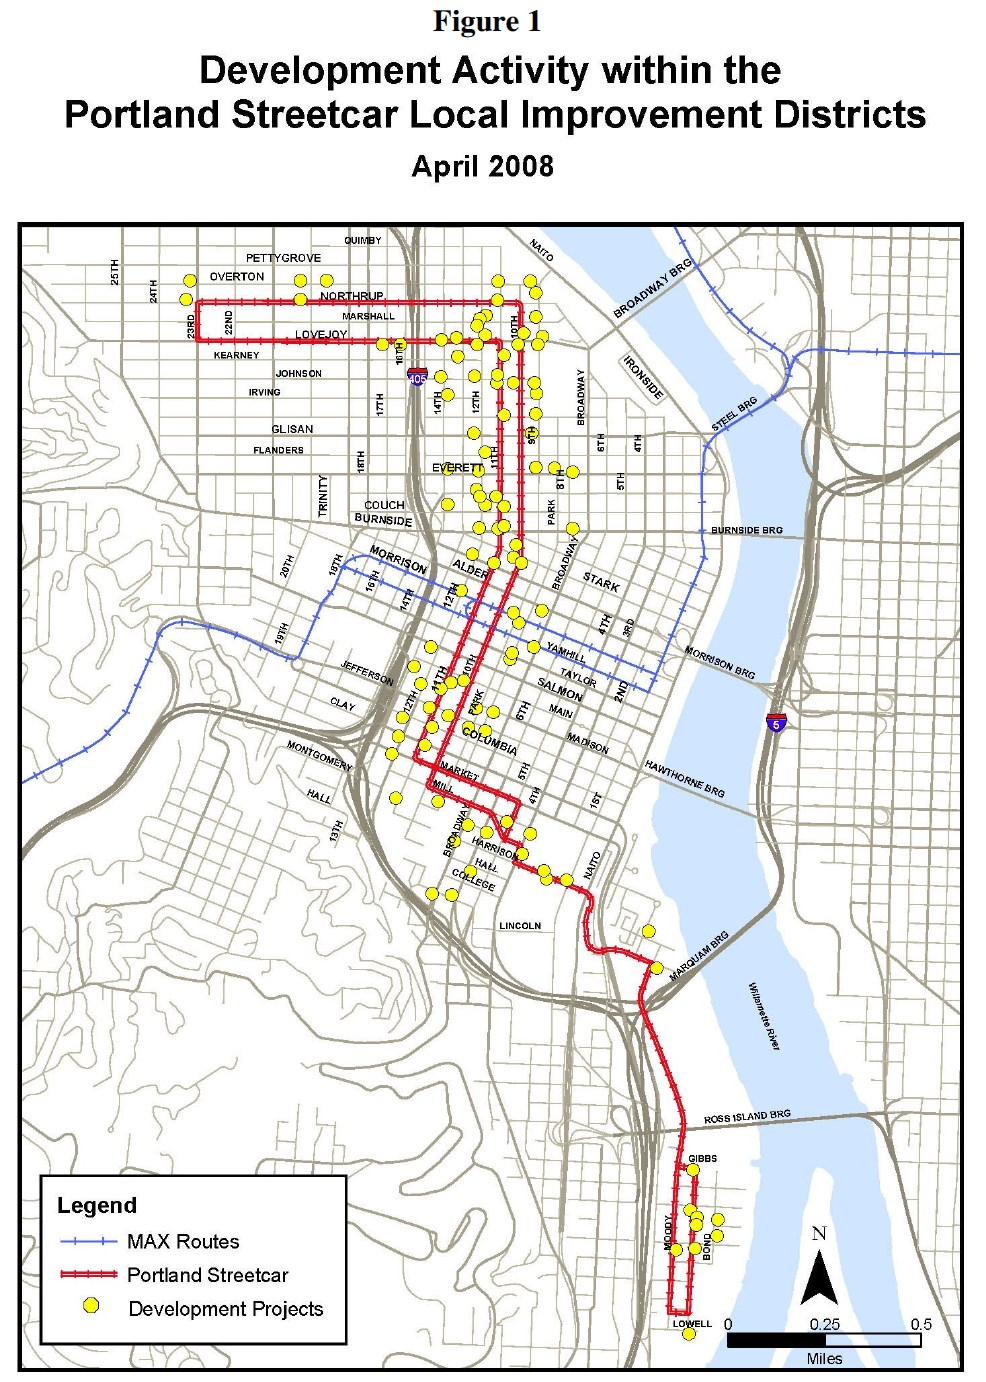 Development Activity within the Portland Streetcar Local Improvement Districts